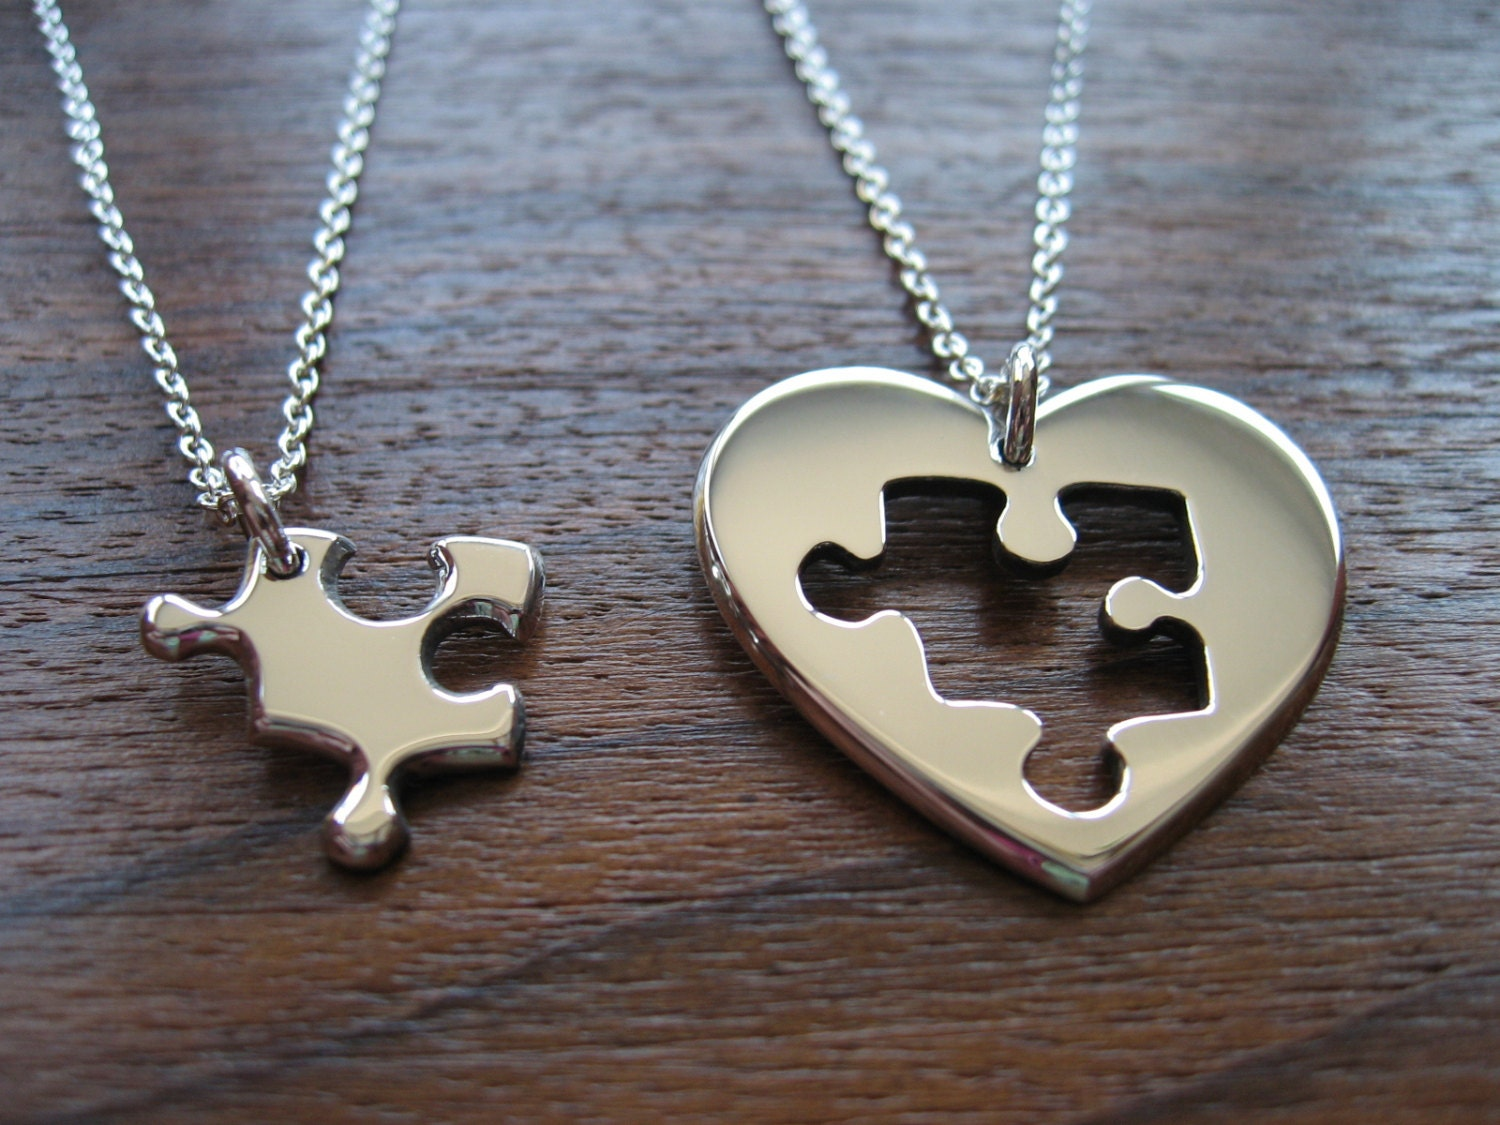 his necklace hers az stainless products for titanium necklaces and steel finov waiting puzzle you love